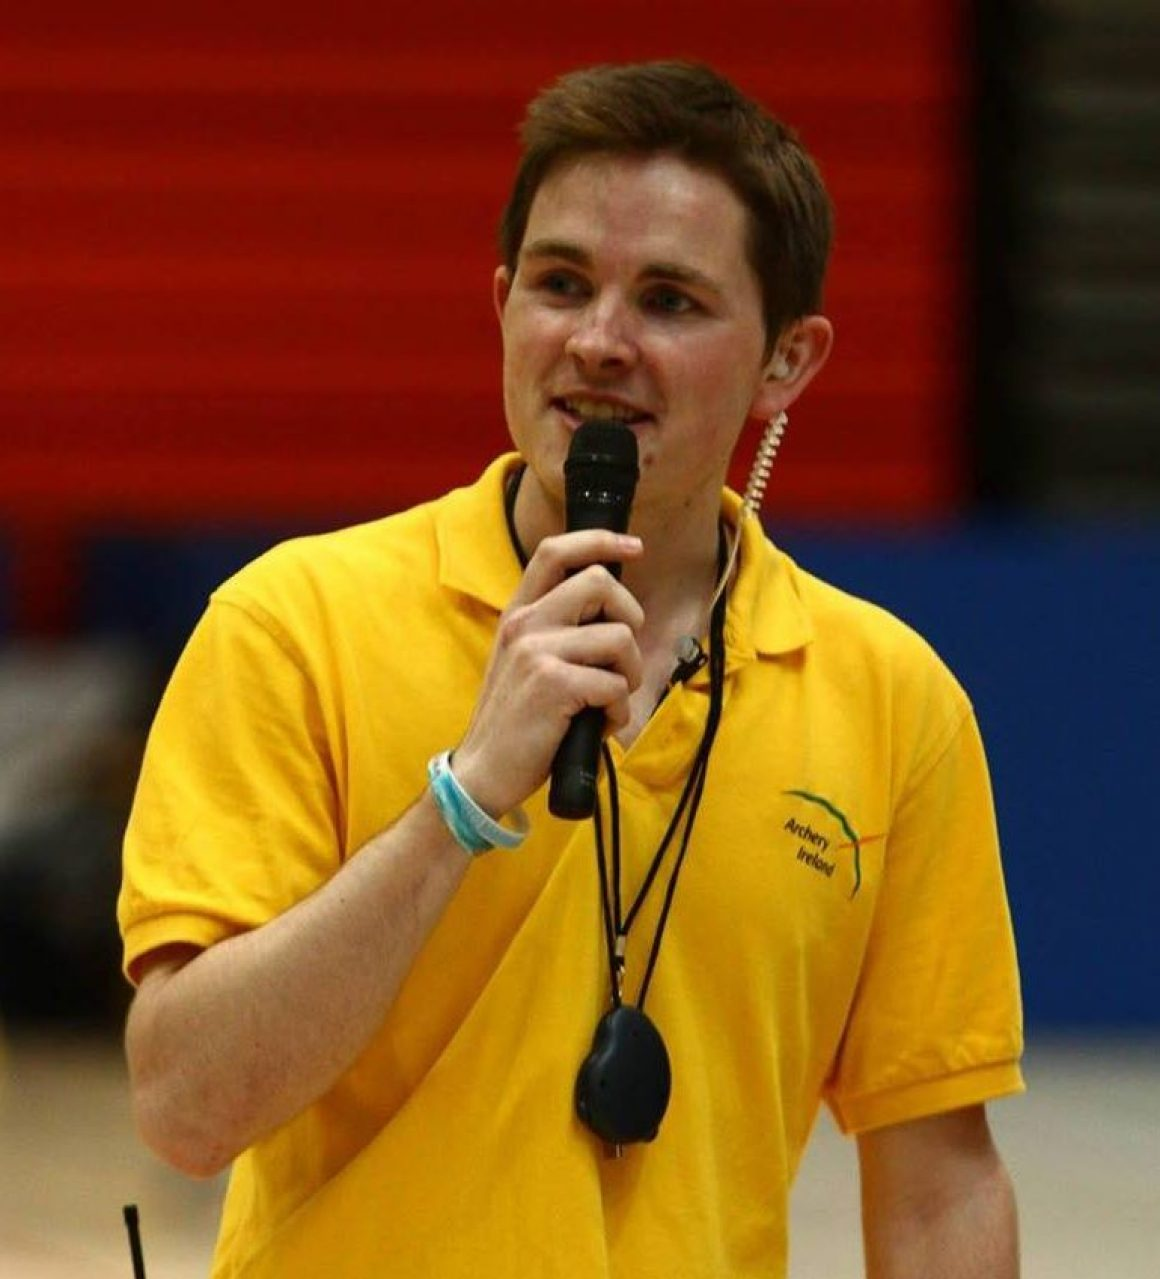 Thomas Brouder - ISAA Chairperson